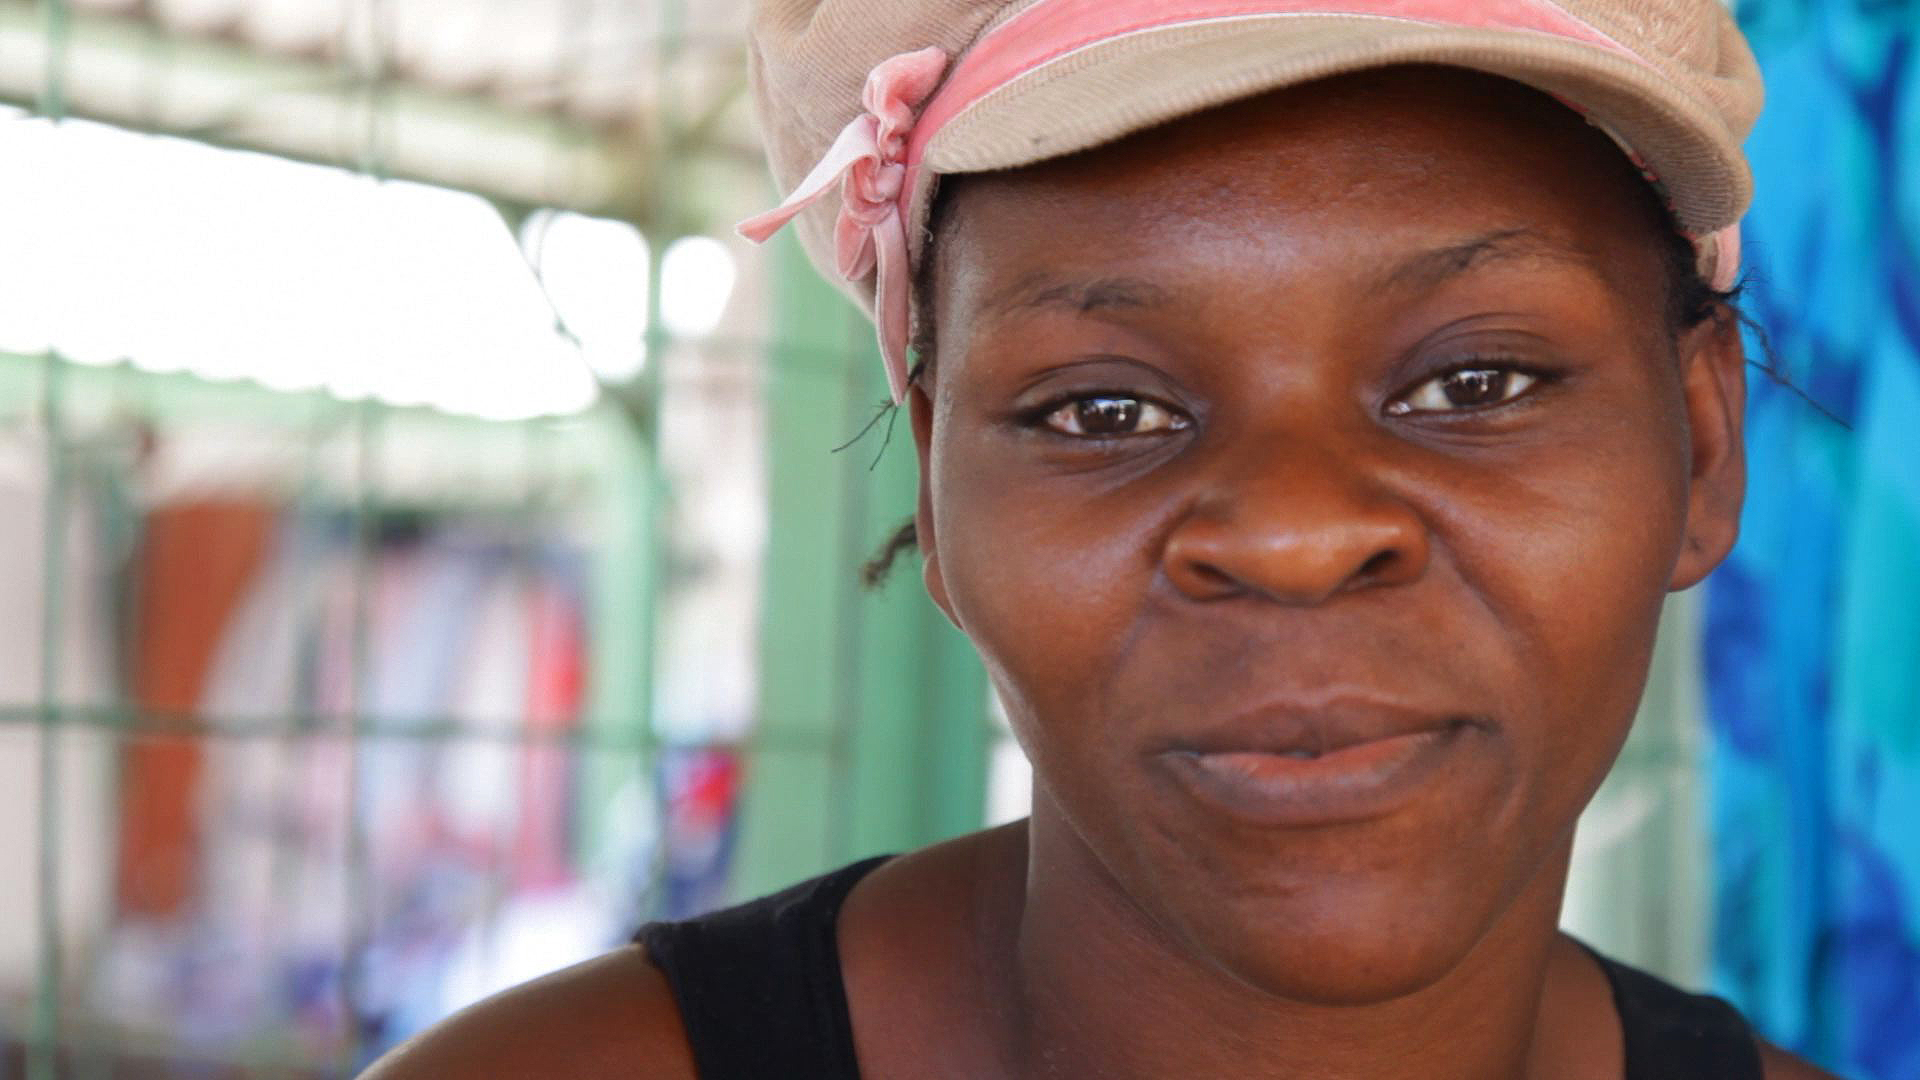 haitian immigration to the dominican republic In this documentary, mrt explores as to why so many haitians migrate to dominican republic, their lives there, and the challenges they faced back in haiti.